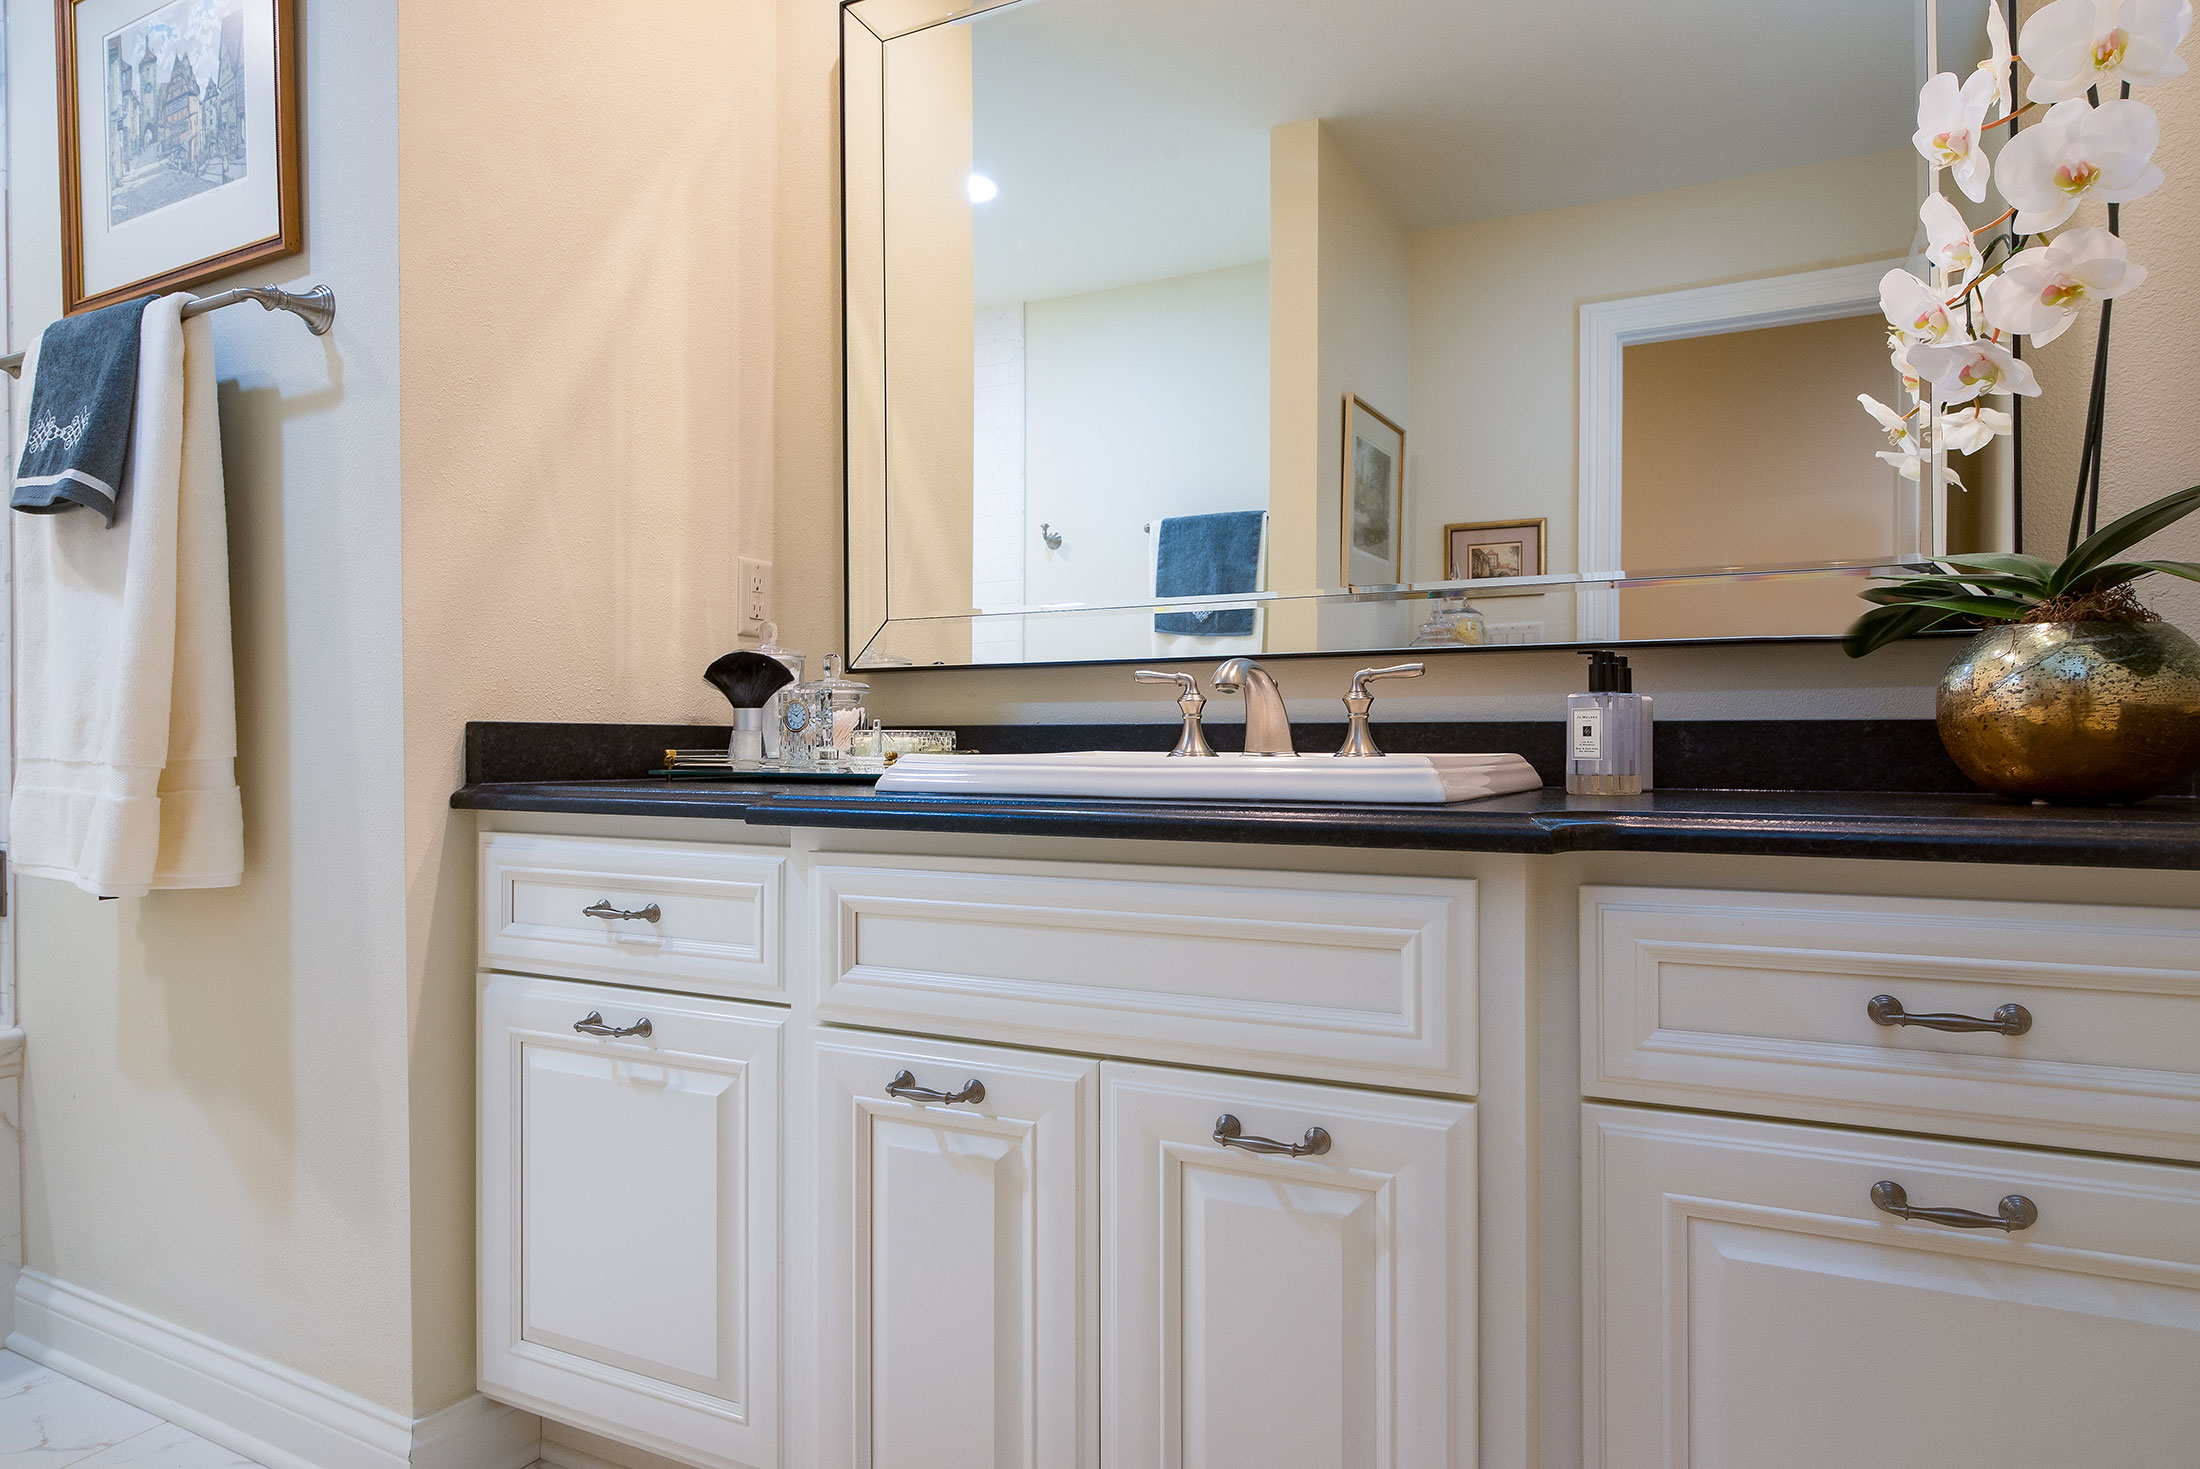 White Bathroom Cabinets, Black Granite Countertops